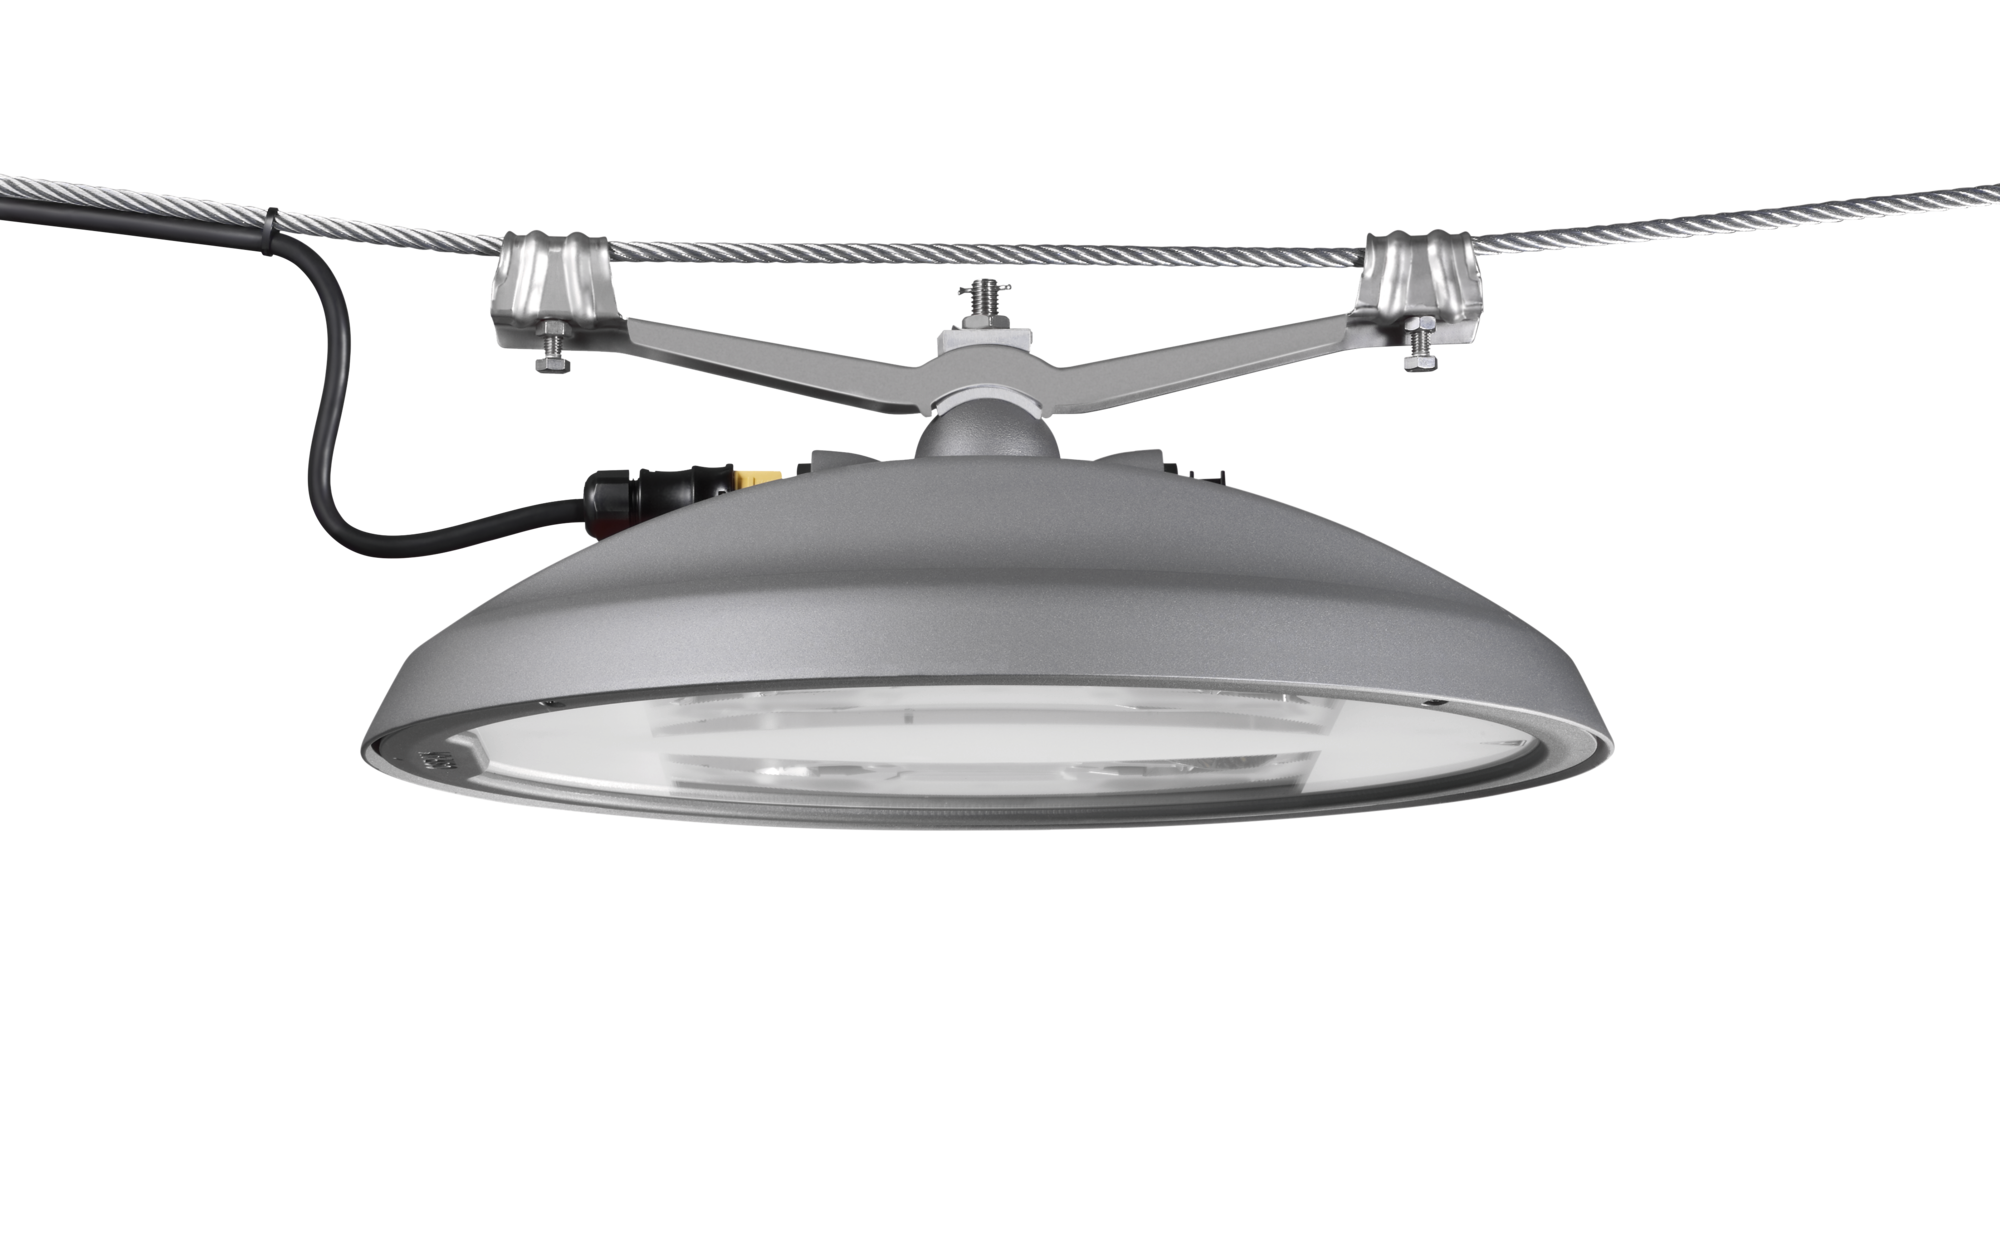 sielight-lightning-proionta-dl50-mini-catenary